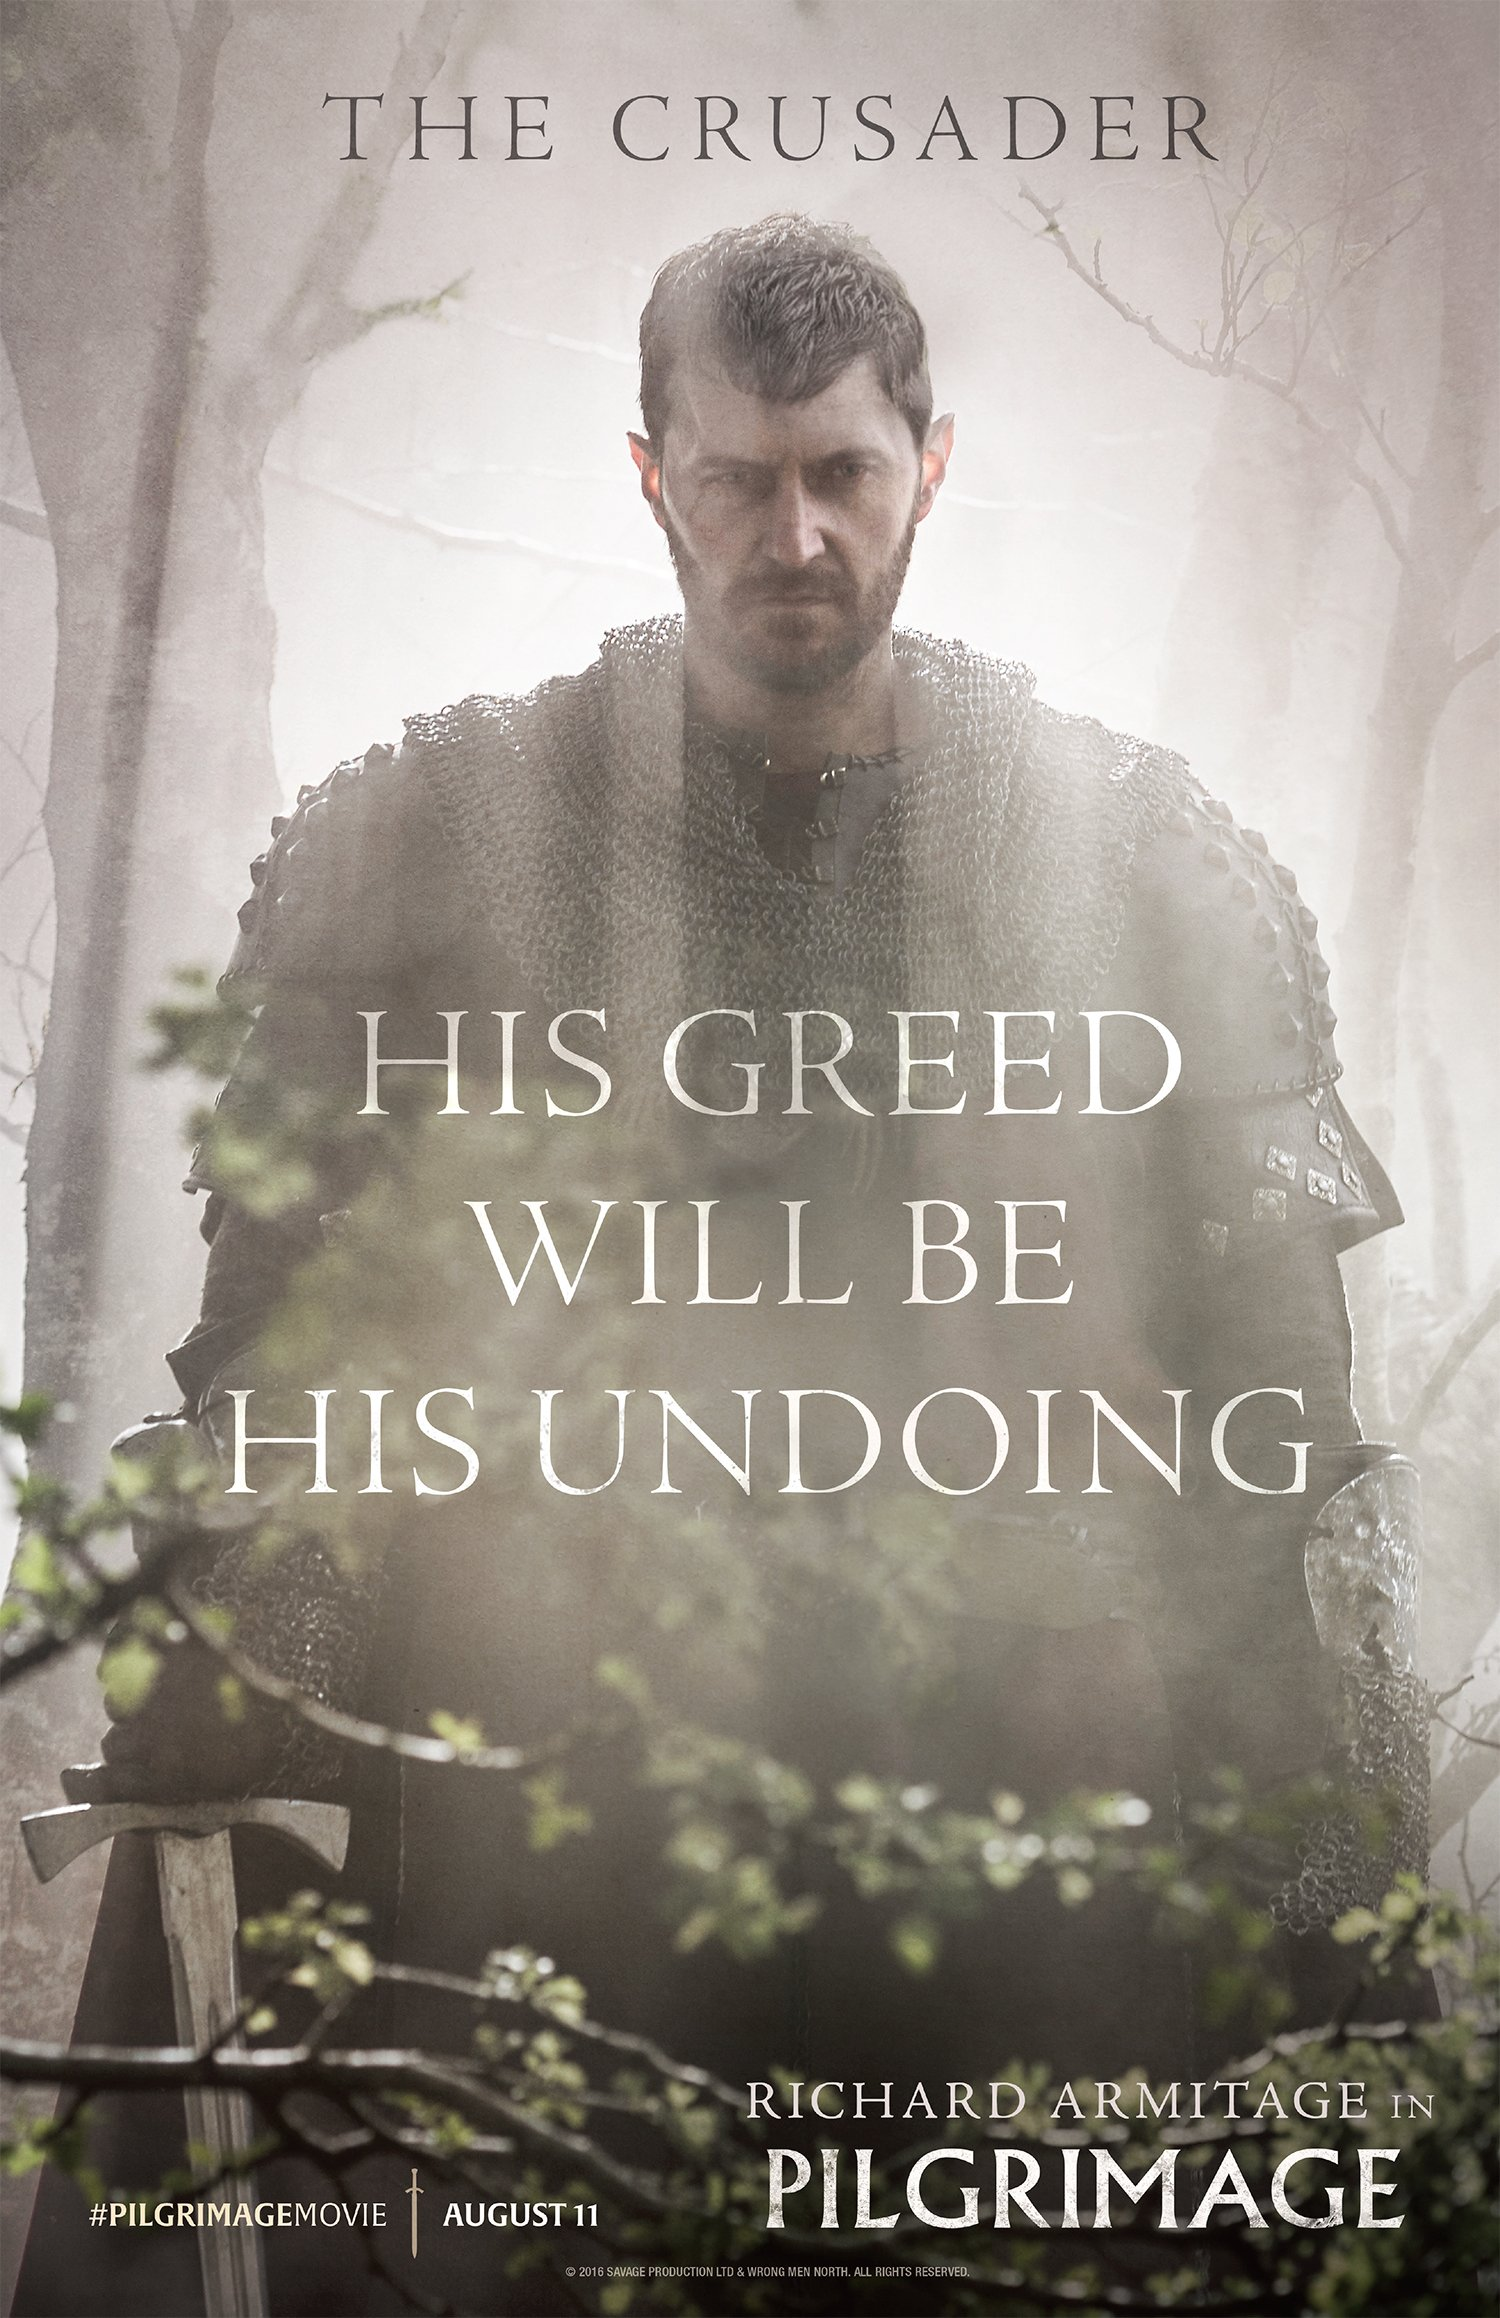 Richard Armitage in Pilgrimage